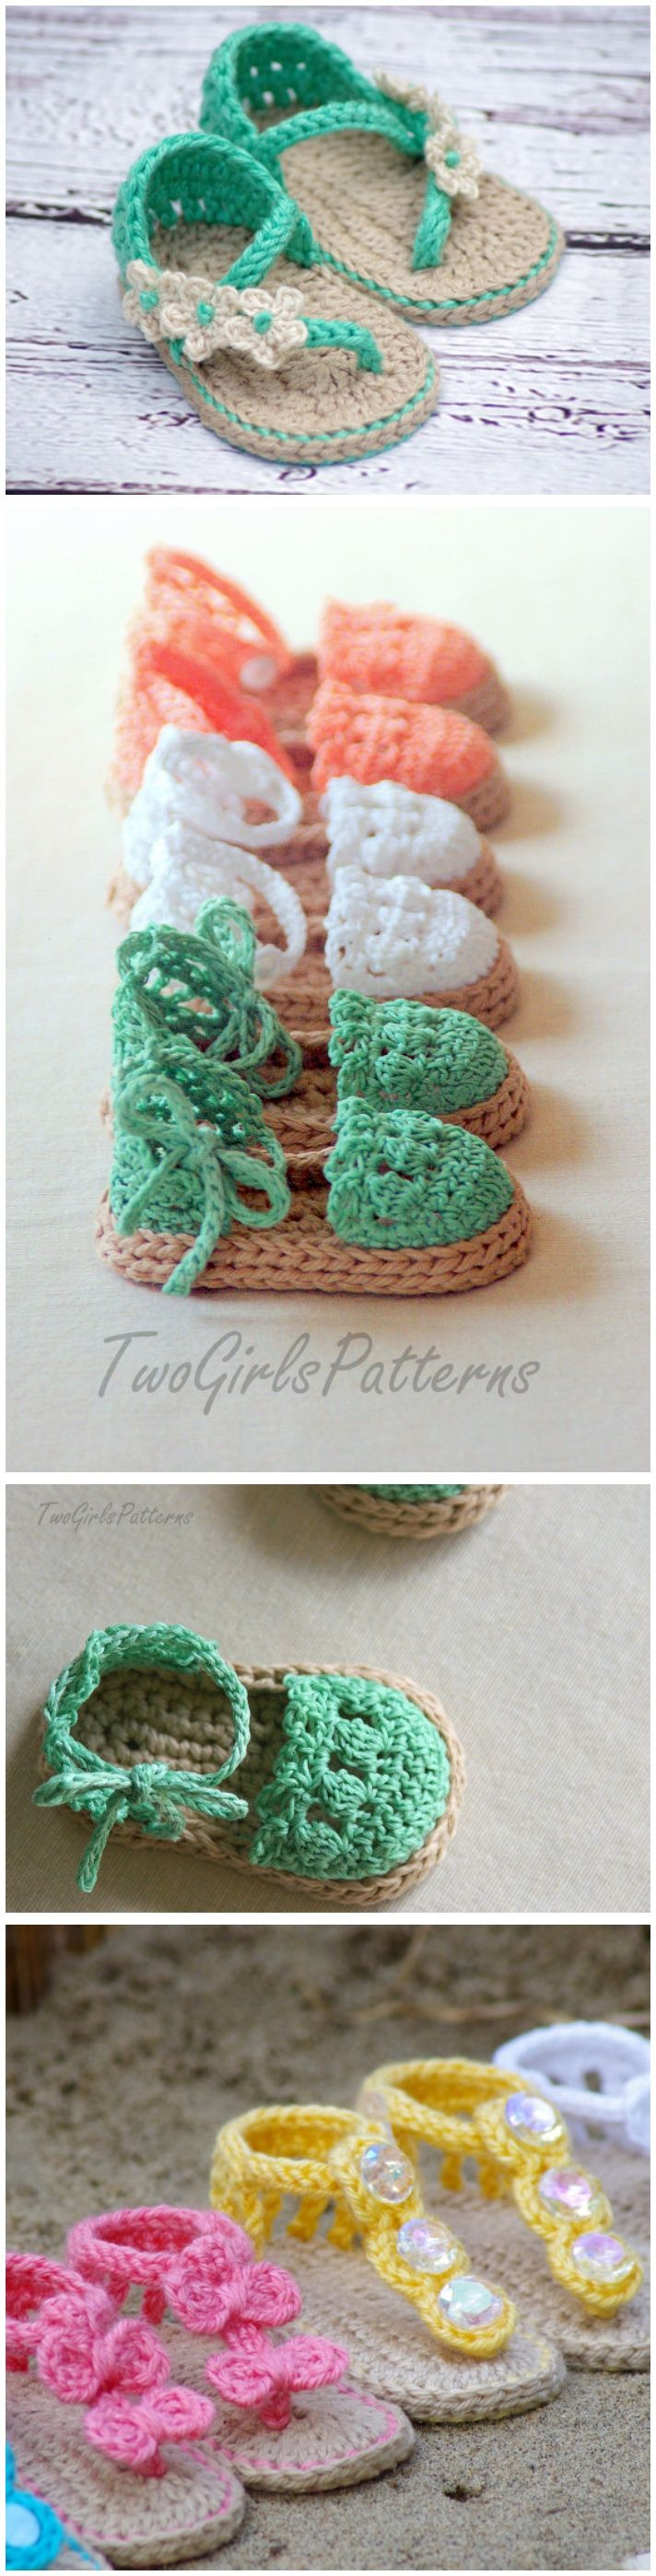 Crochet baby flip flop sandals with patterns baby sandals baby sandals crochet pattern more bankloansurffo Image collections